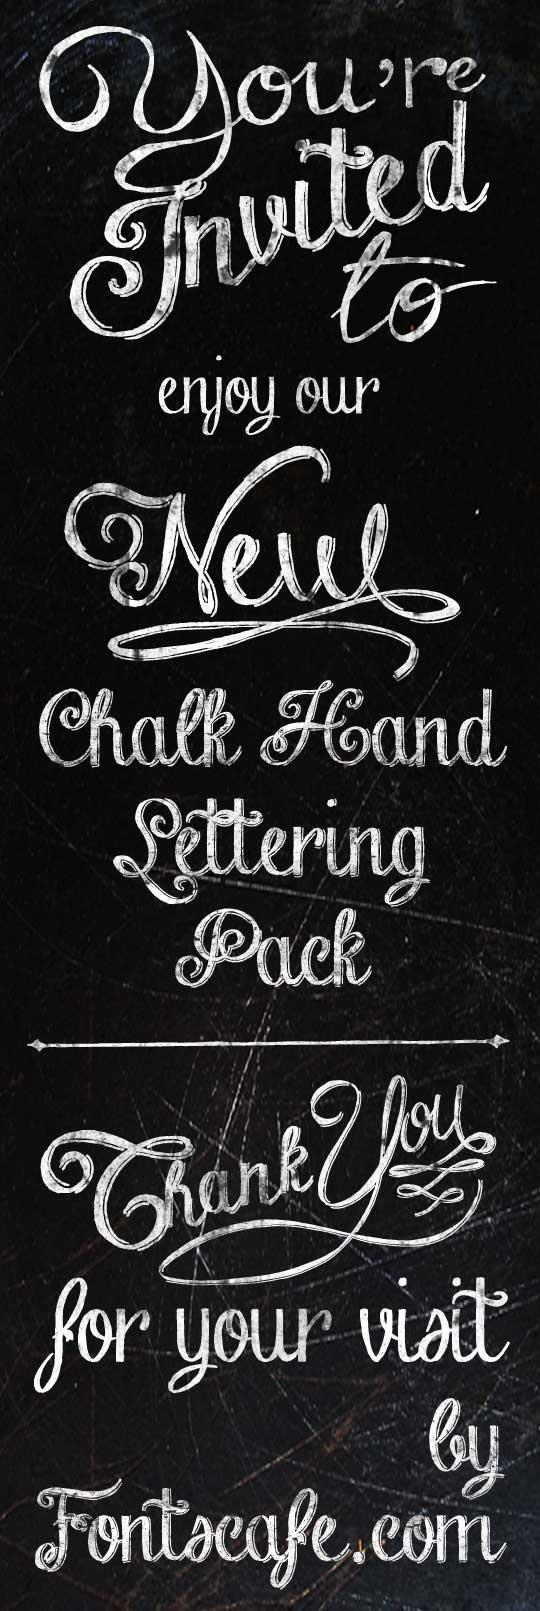 Download Chalk-hand-lettering-shaded_dem font by FontsCafe - FontSpace